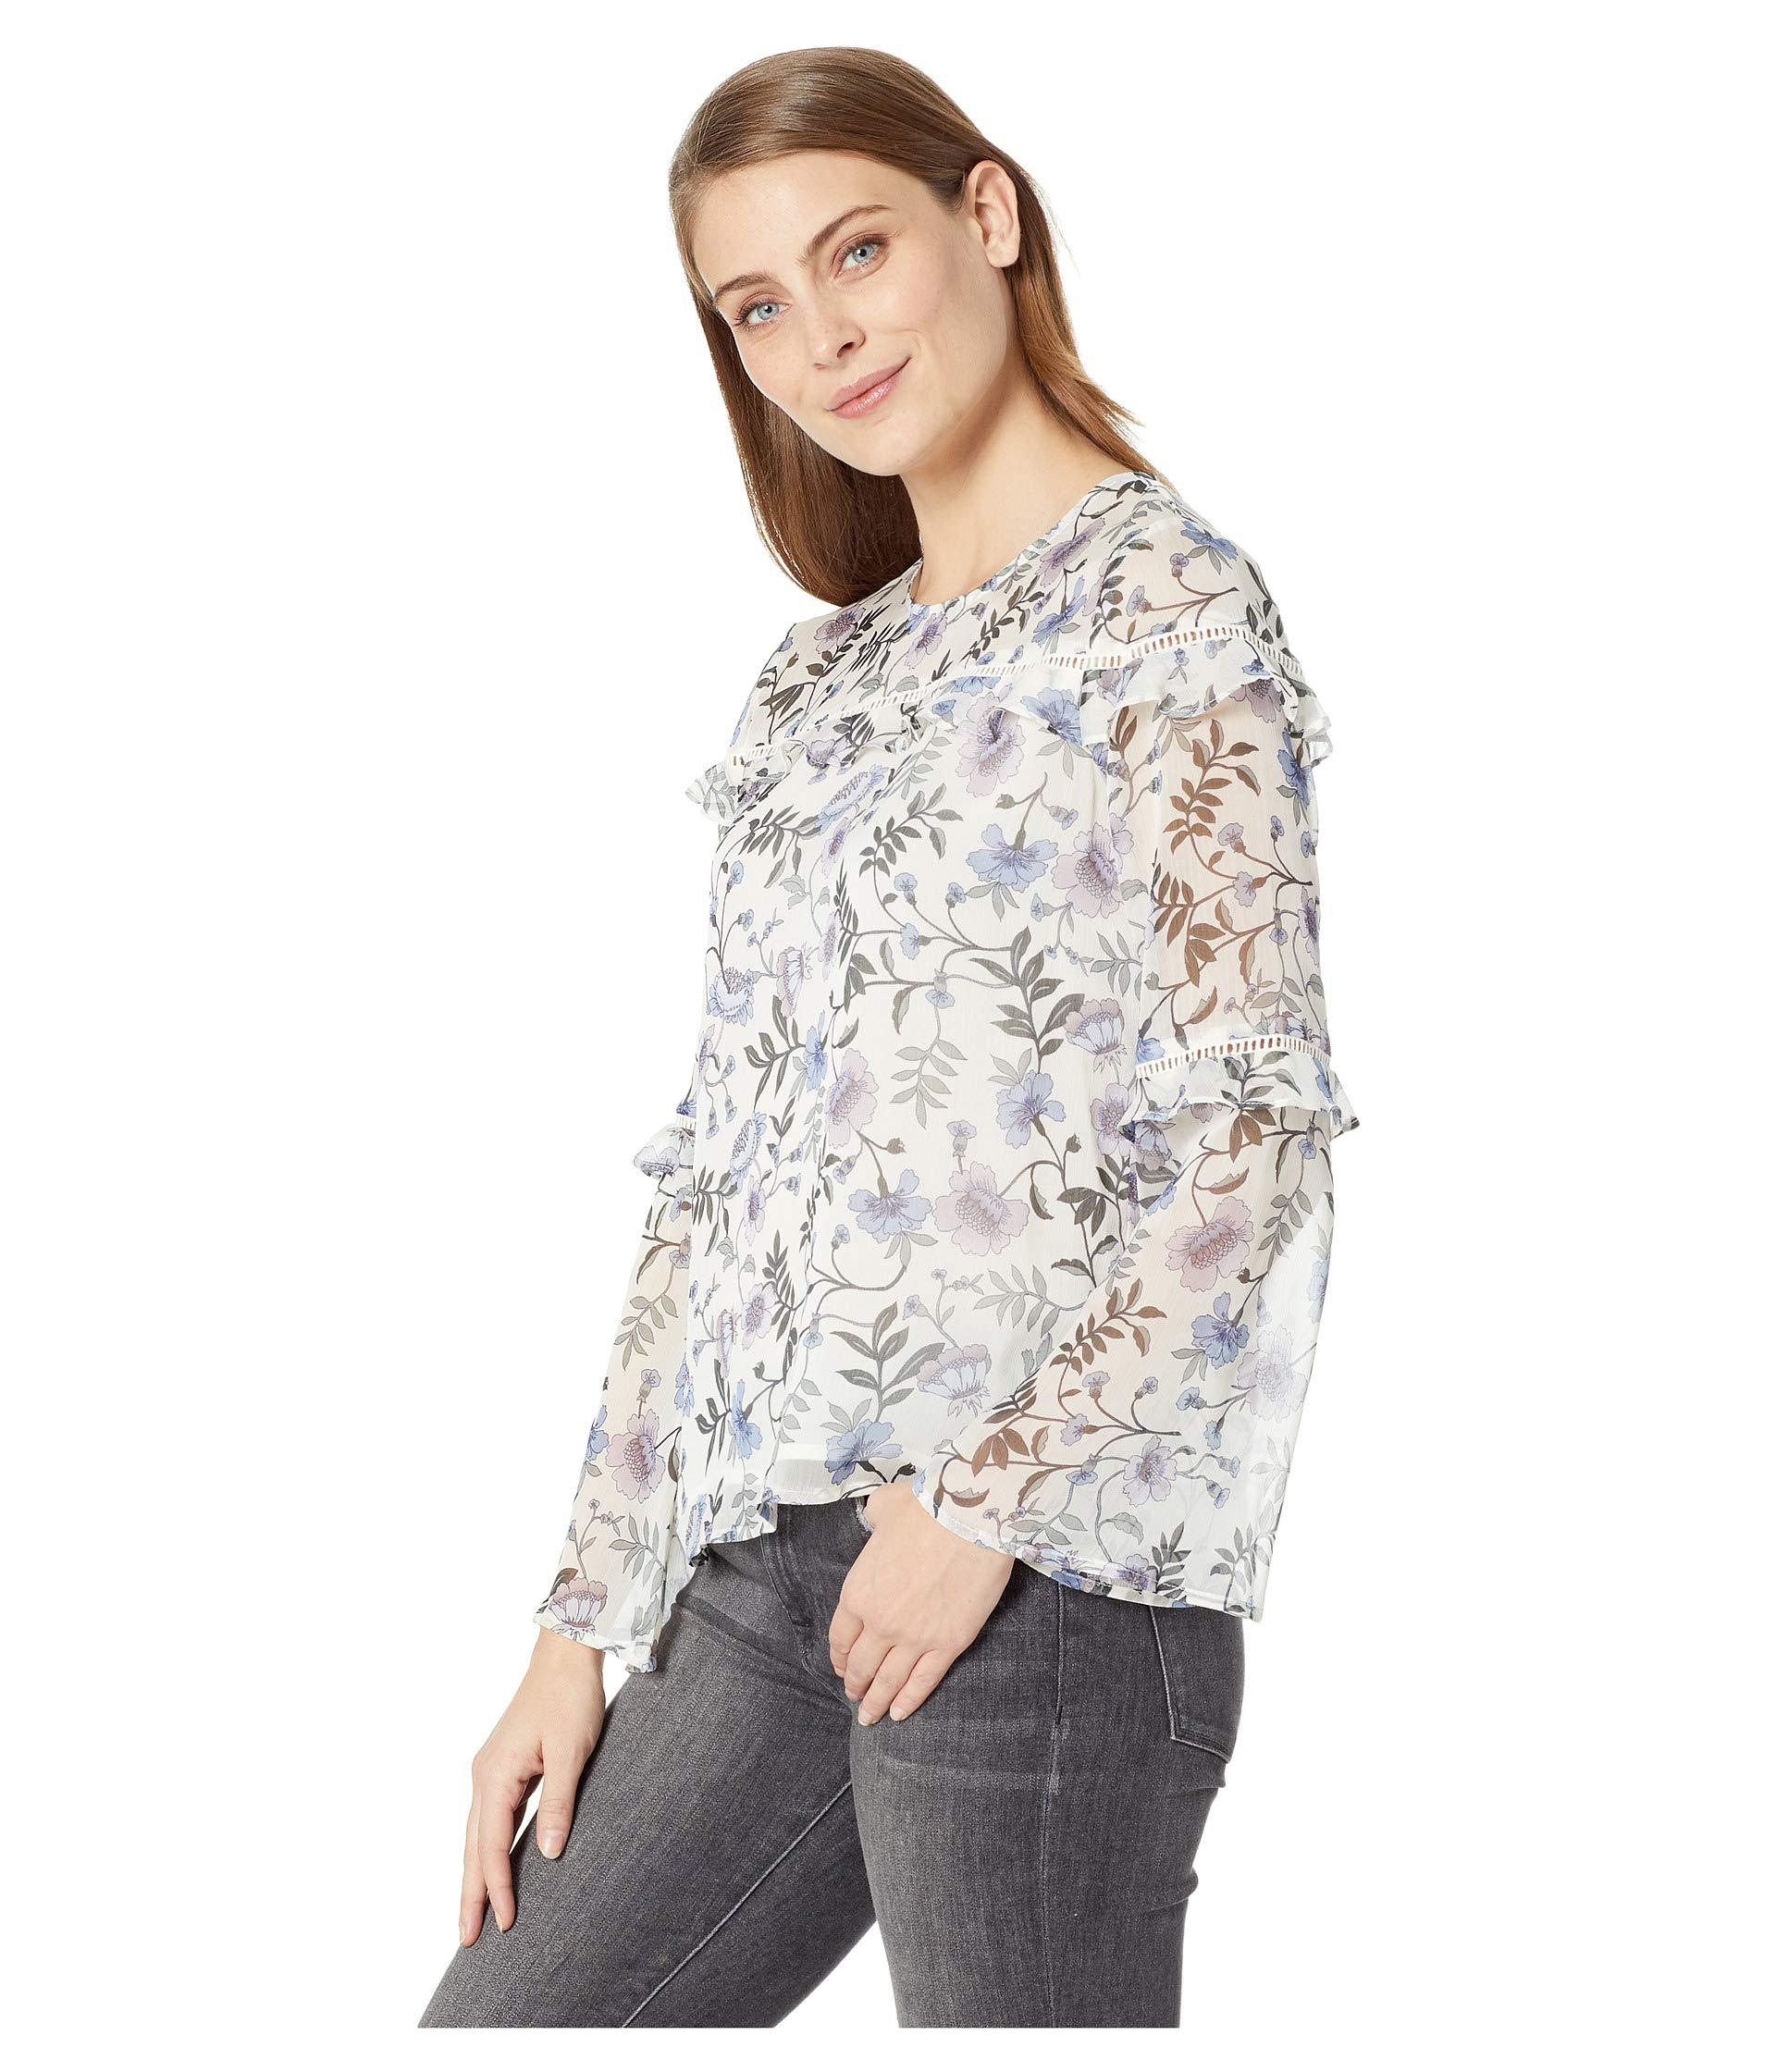 573ccc32355 Lyst - Cece Long Sleeve Tiered Ruffle Bloomsbury Floral Blouse in White -  Save 35%